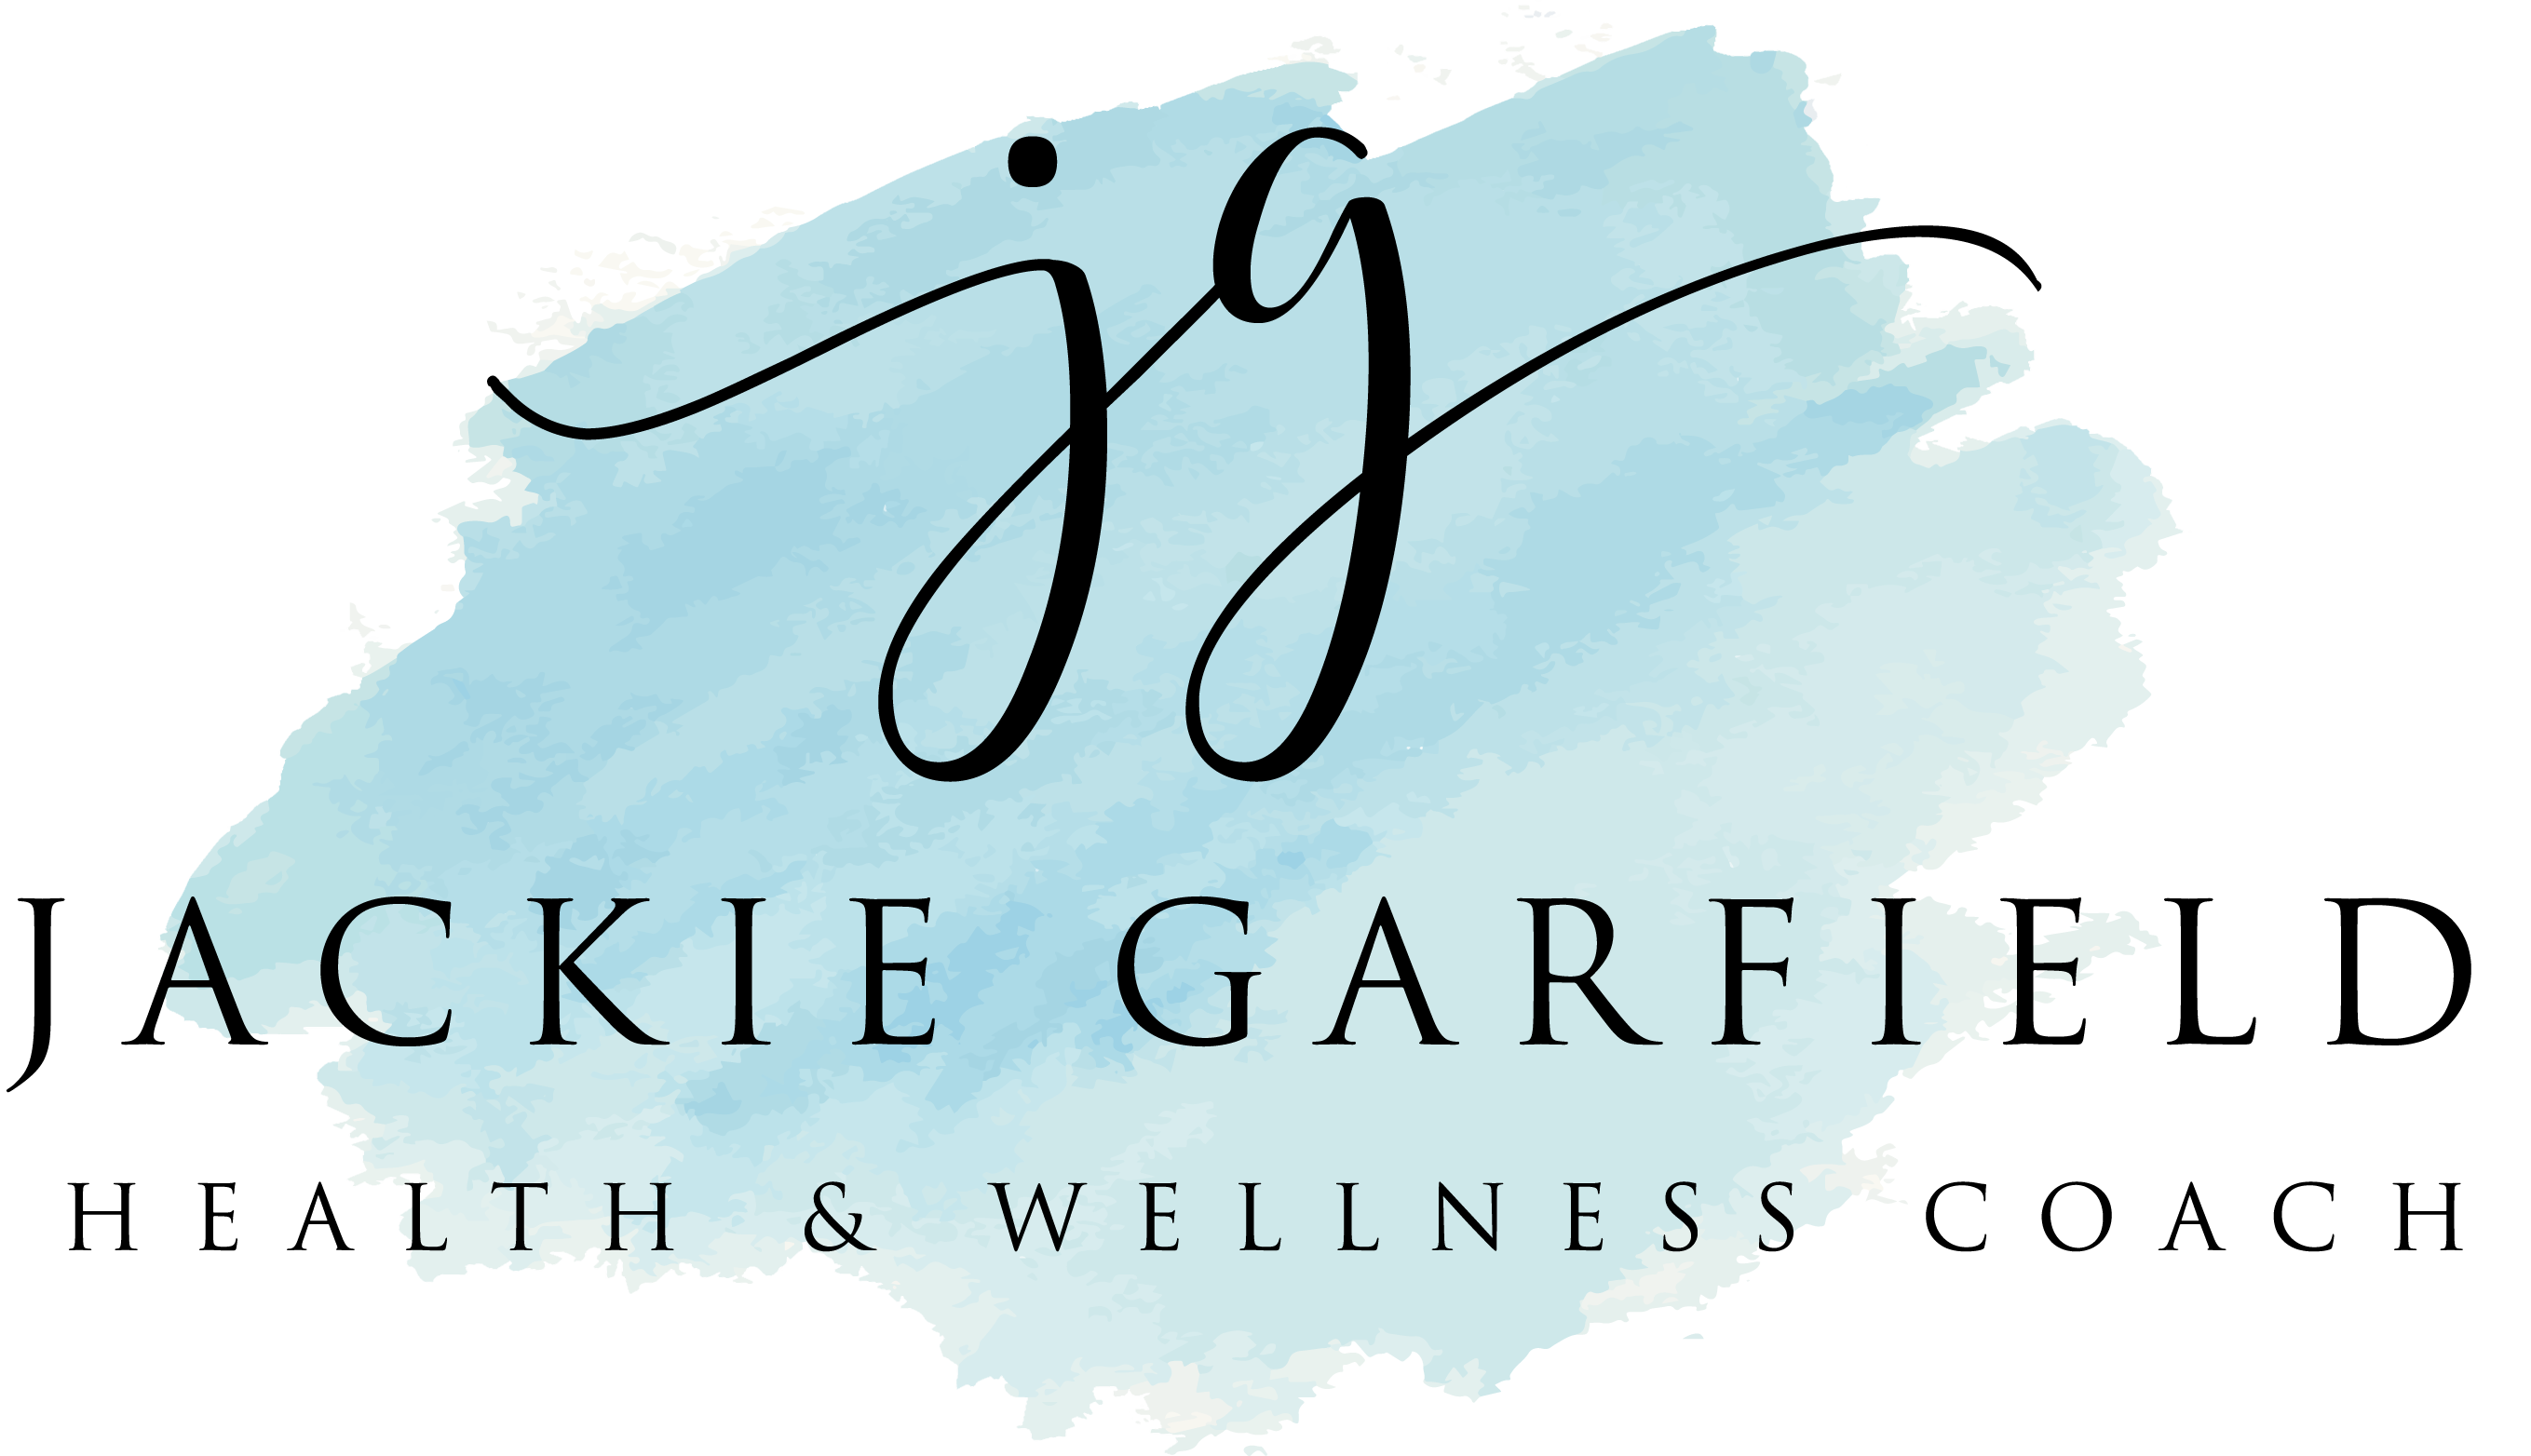 Jackie Garfield ~ Health & Wellness Coach